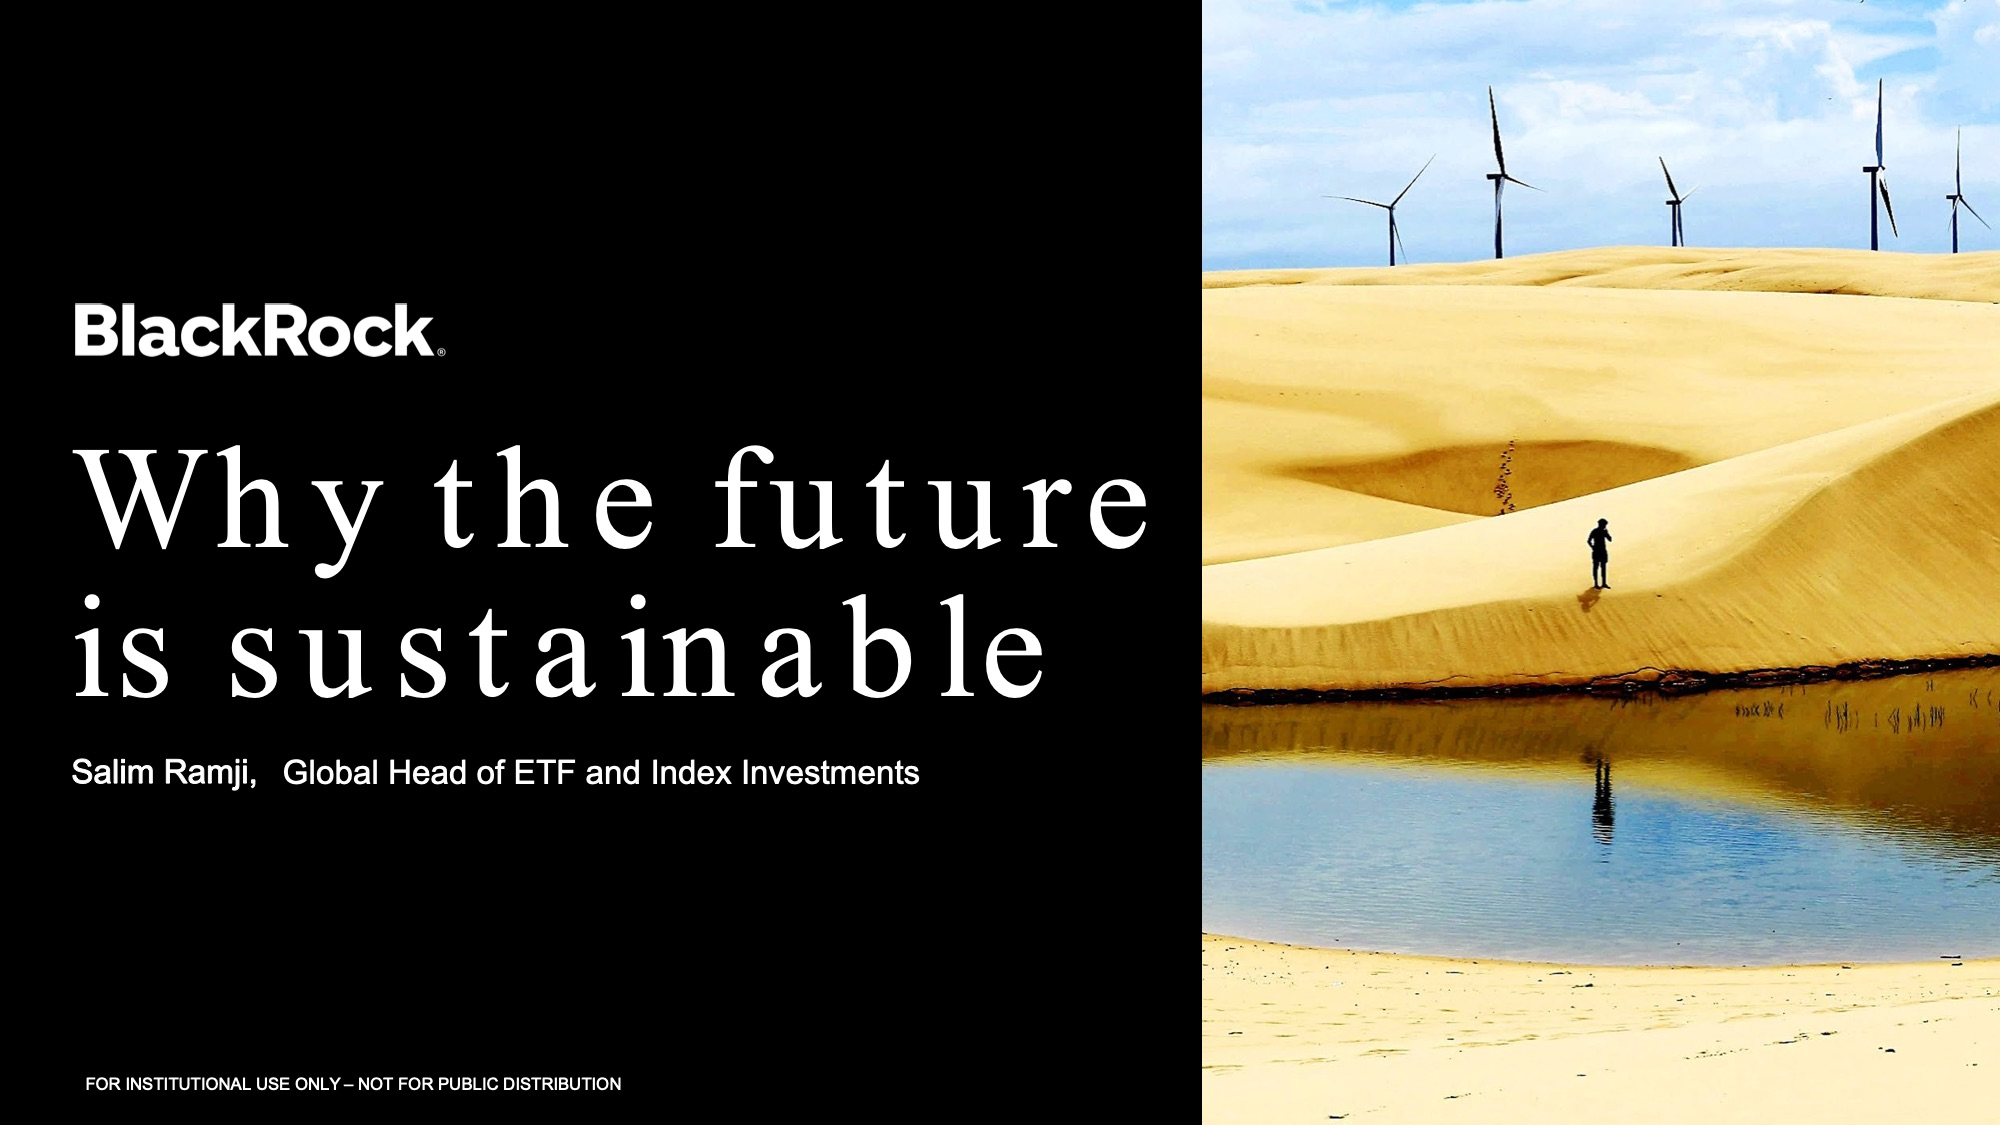 「Why the future is sustainable?」(社会的インパクト投資フォーラム プレゼンテーション資料)